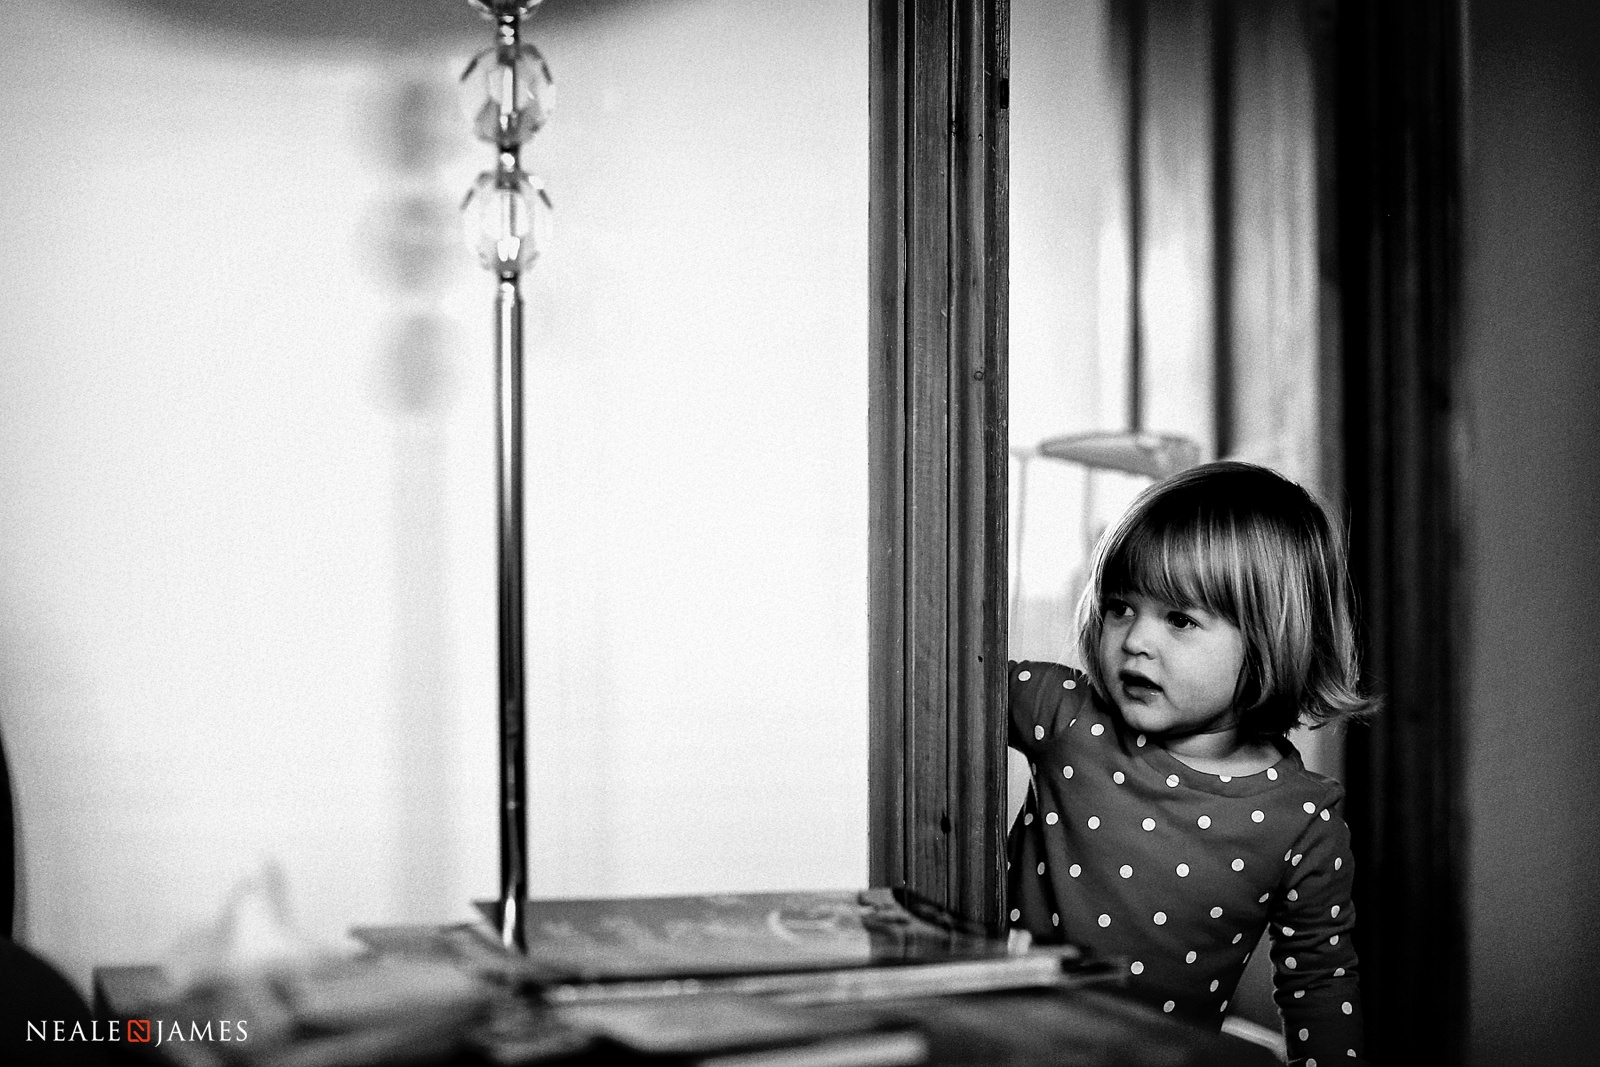 A young girl pokes her head around the corner of the door and looks into a sitting room